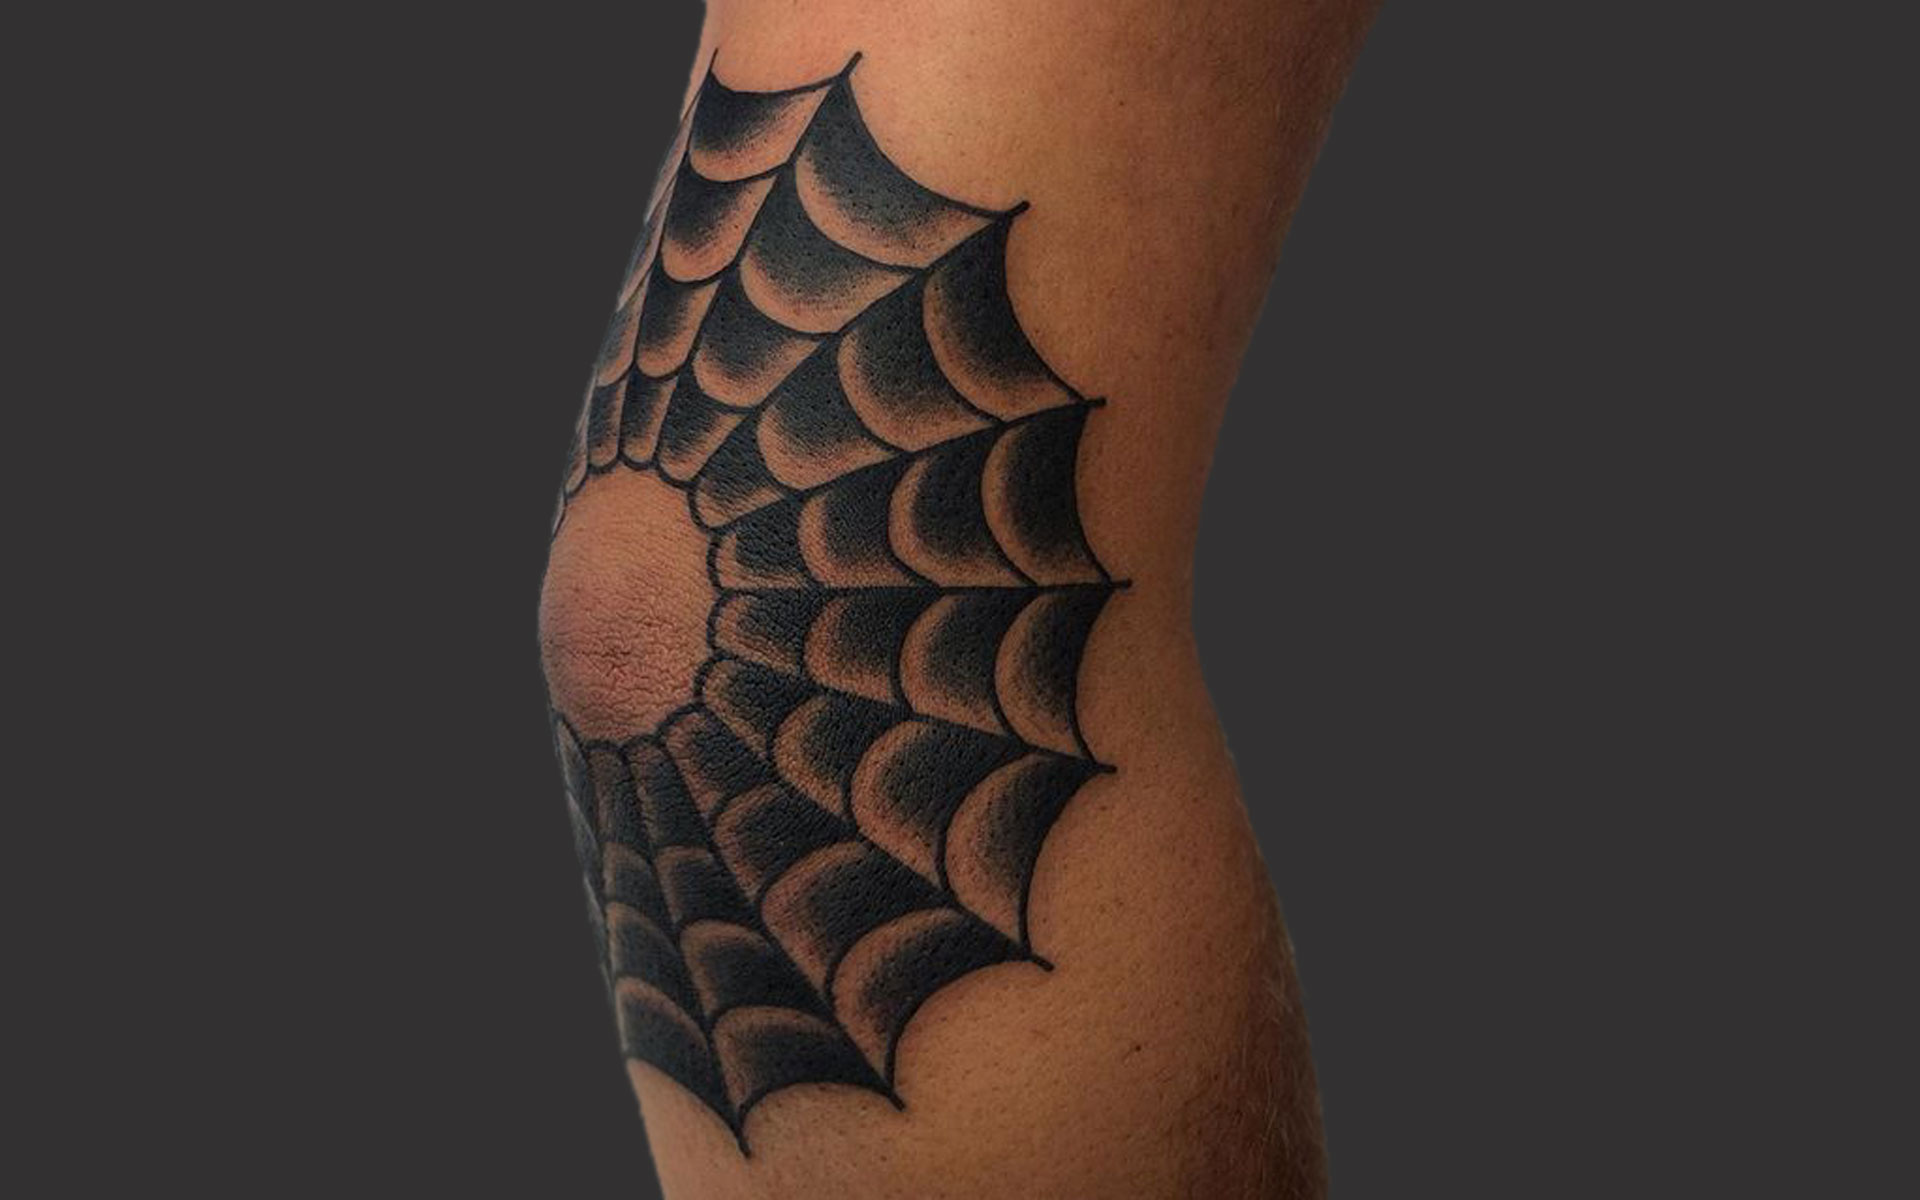 rock-of-ages-tattoo-tom-web